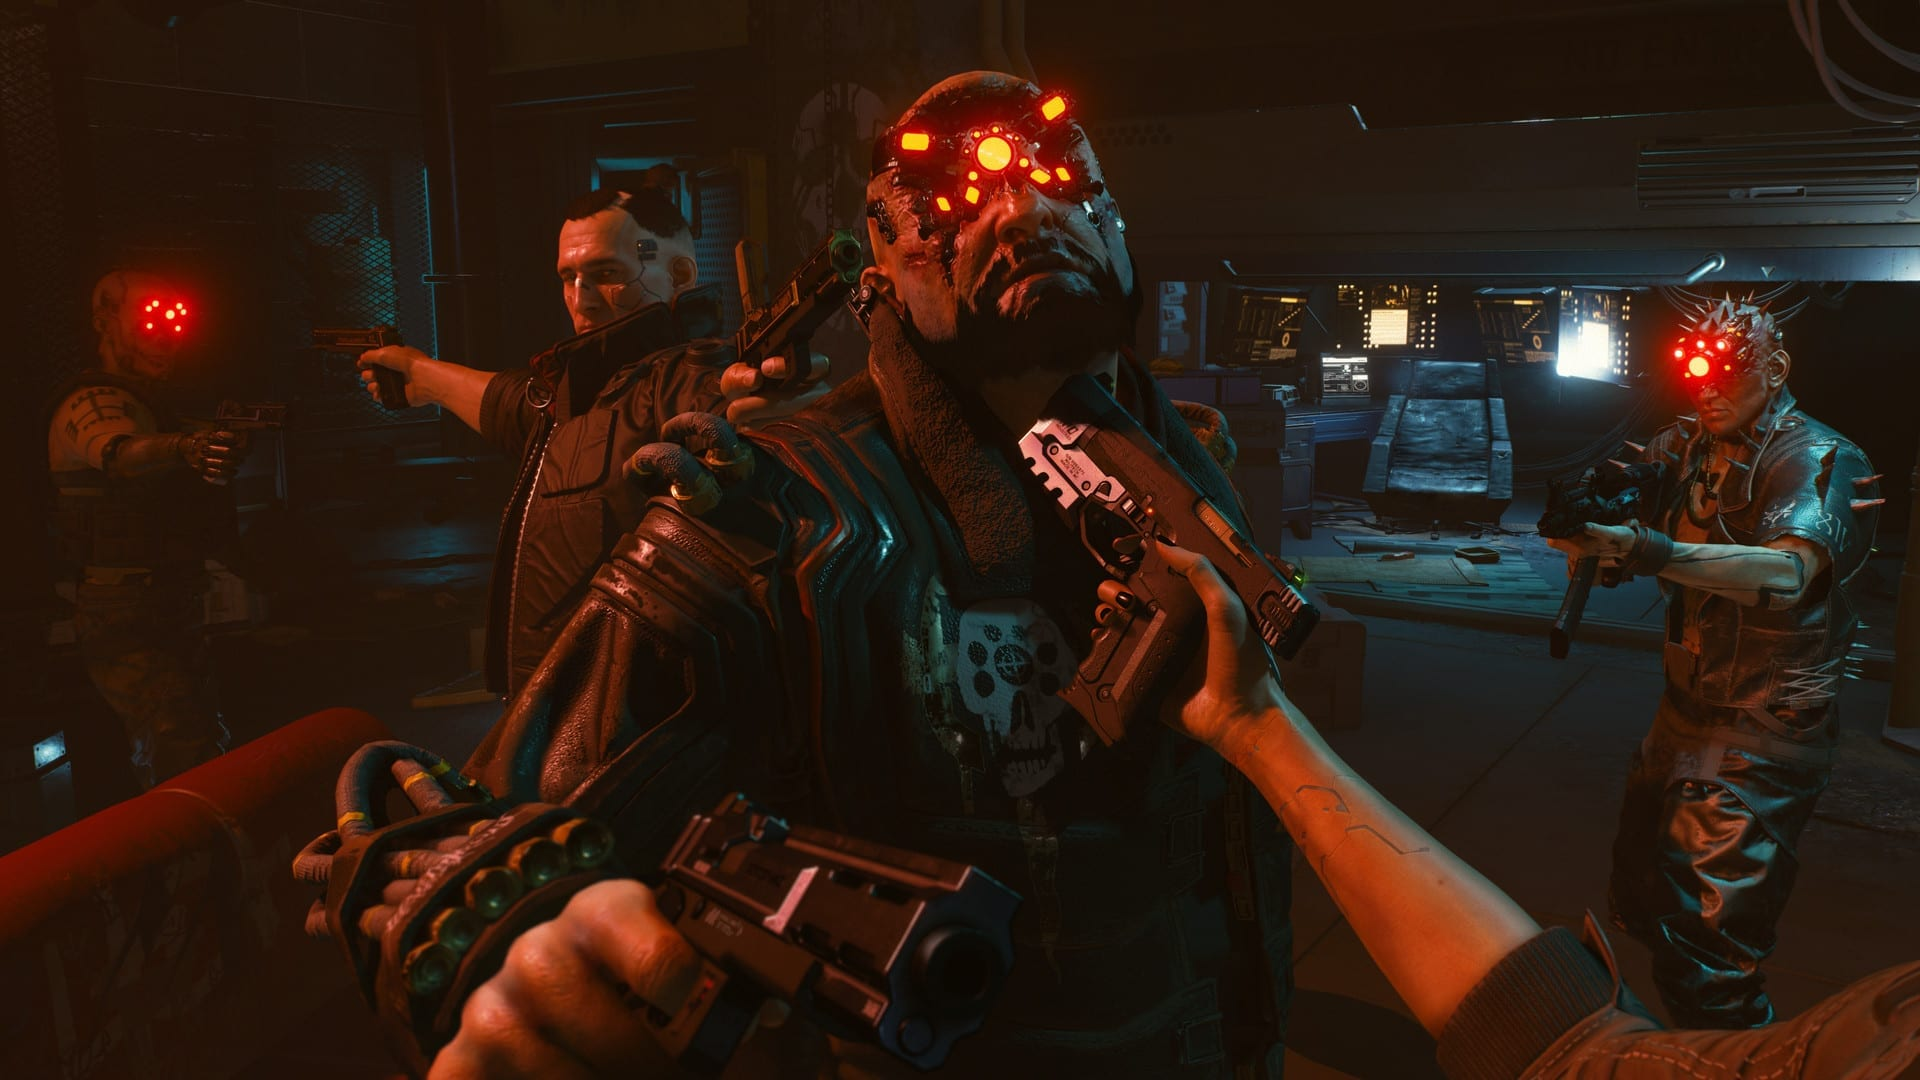 Cyberpunk 2077 Is Ready To Go On PC & Next-Gen Consoles